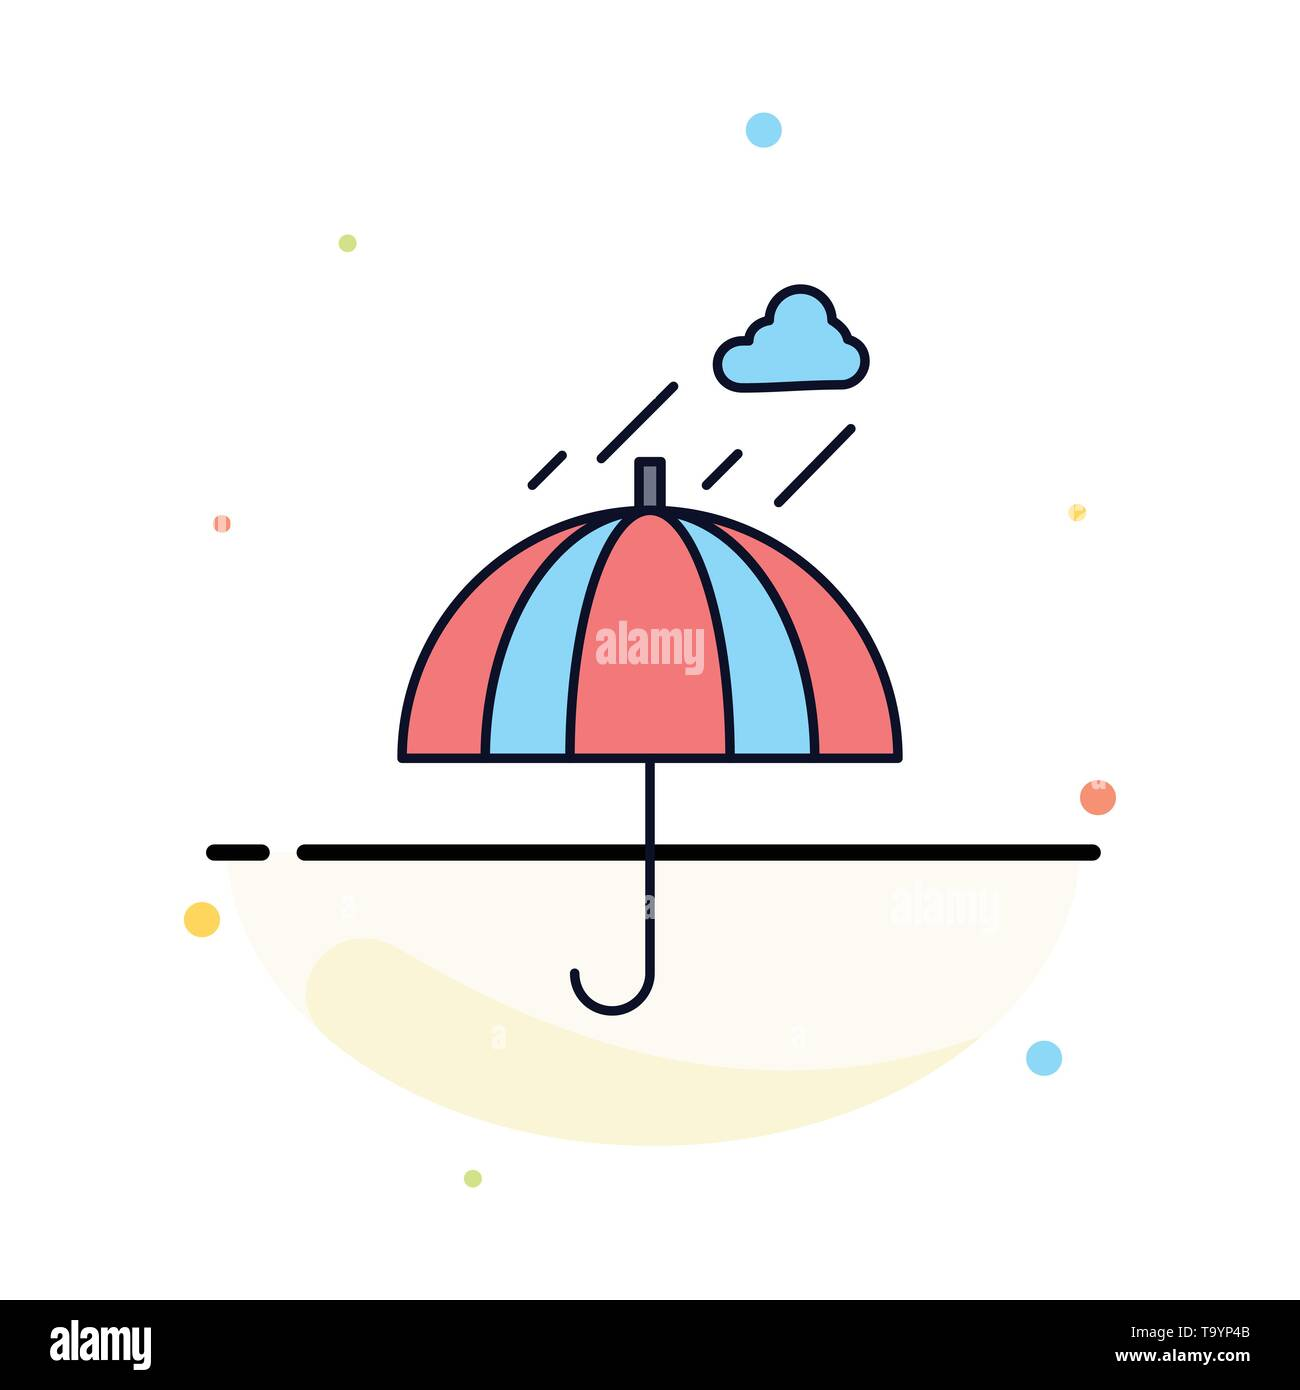 Umbrella, camping, rain, safety, weather Flat Color Icon Vector - Stock Image